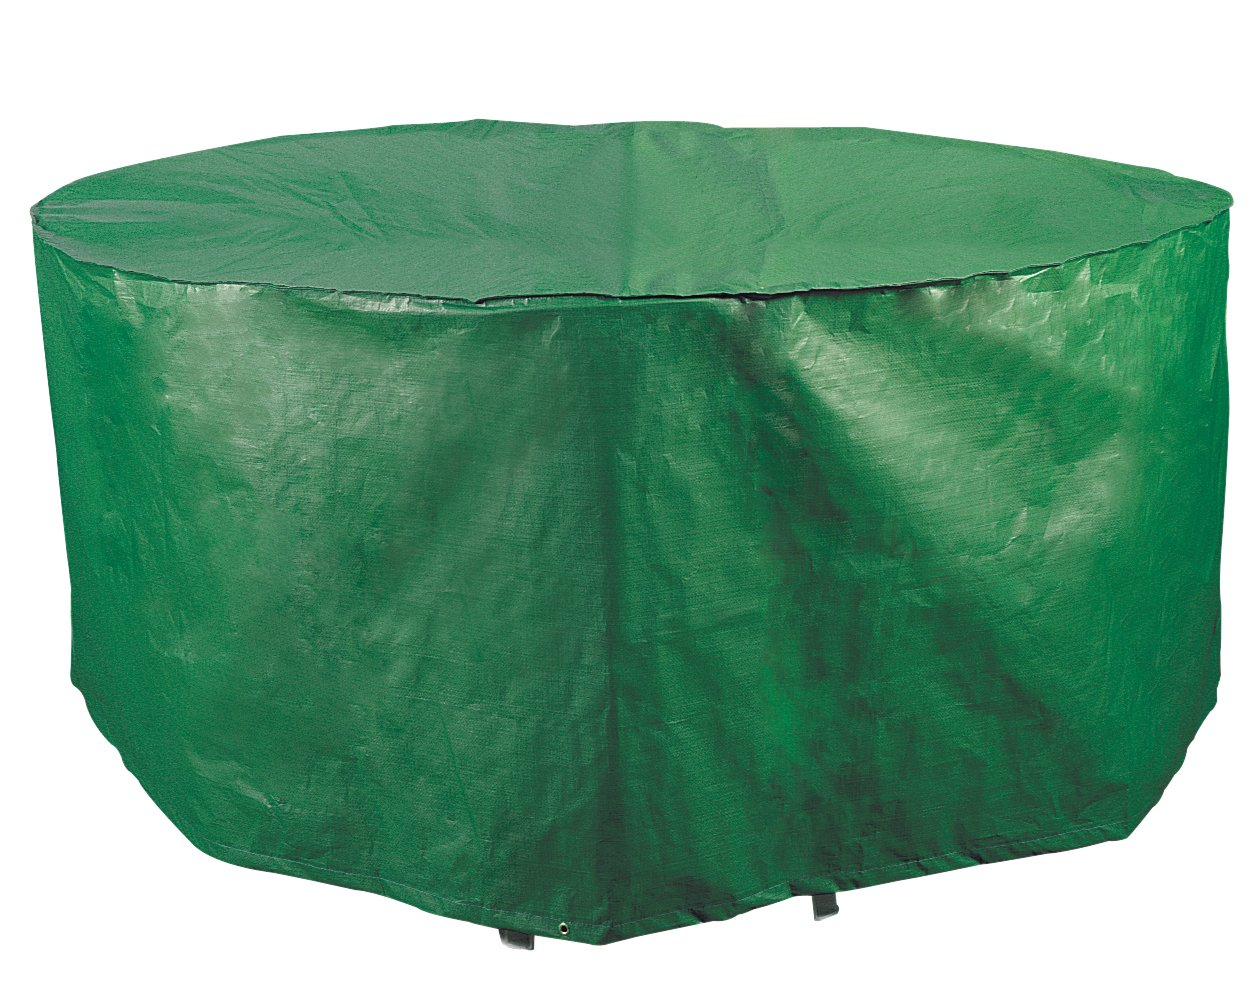 Amazon com   Bosmere B321 Round Waterproof Patio Set Cover  84 Inch  Green    Patio Chair Covers   Garden   Outdoor. Amazon com   Bosmere B321 Round Waterproof Patio Set Cover  84